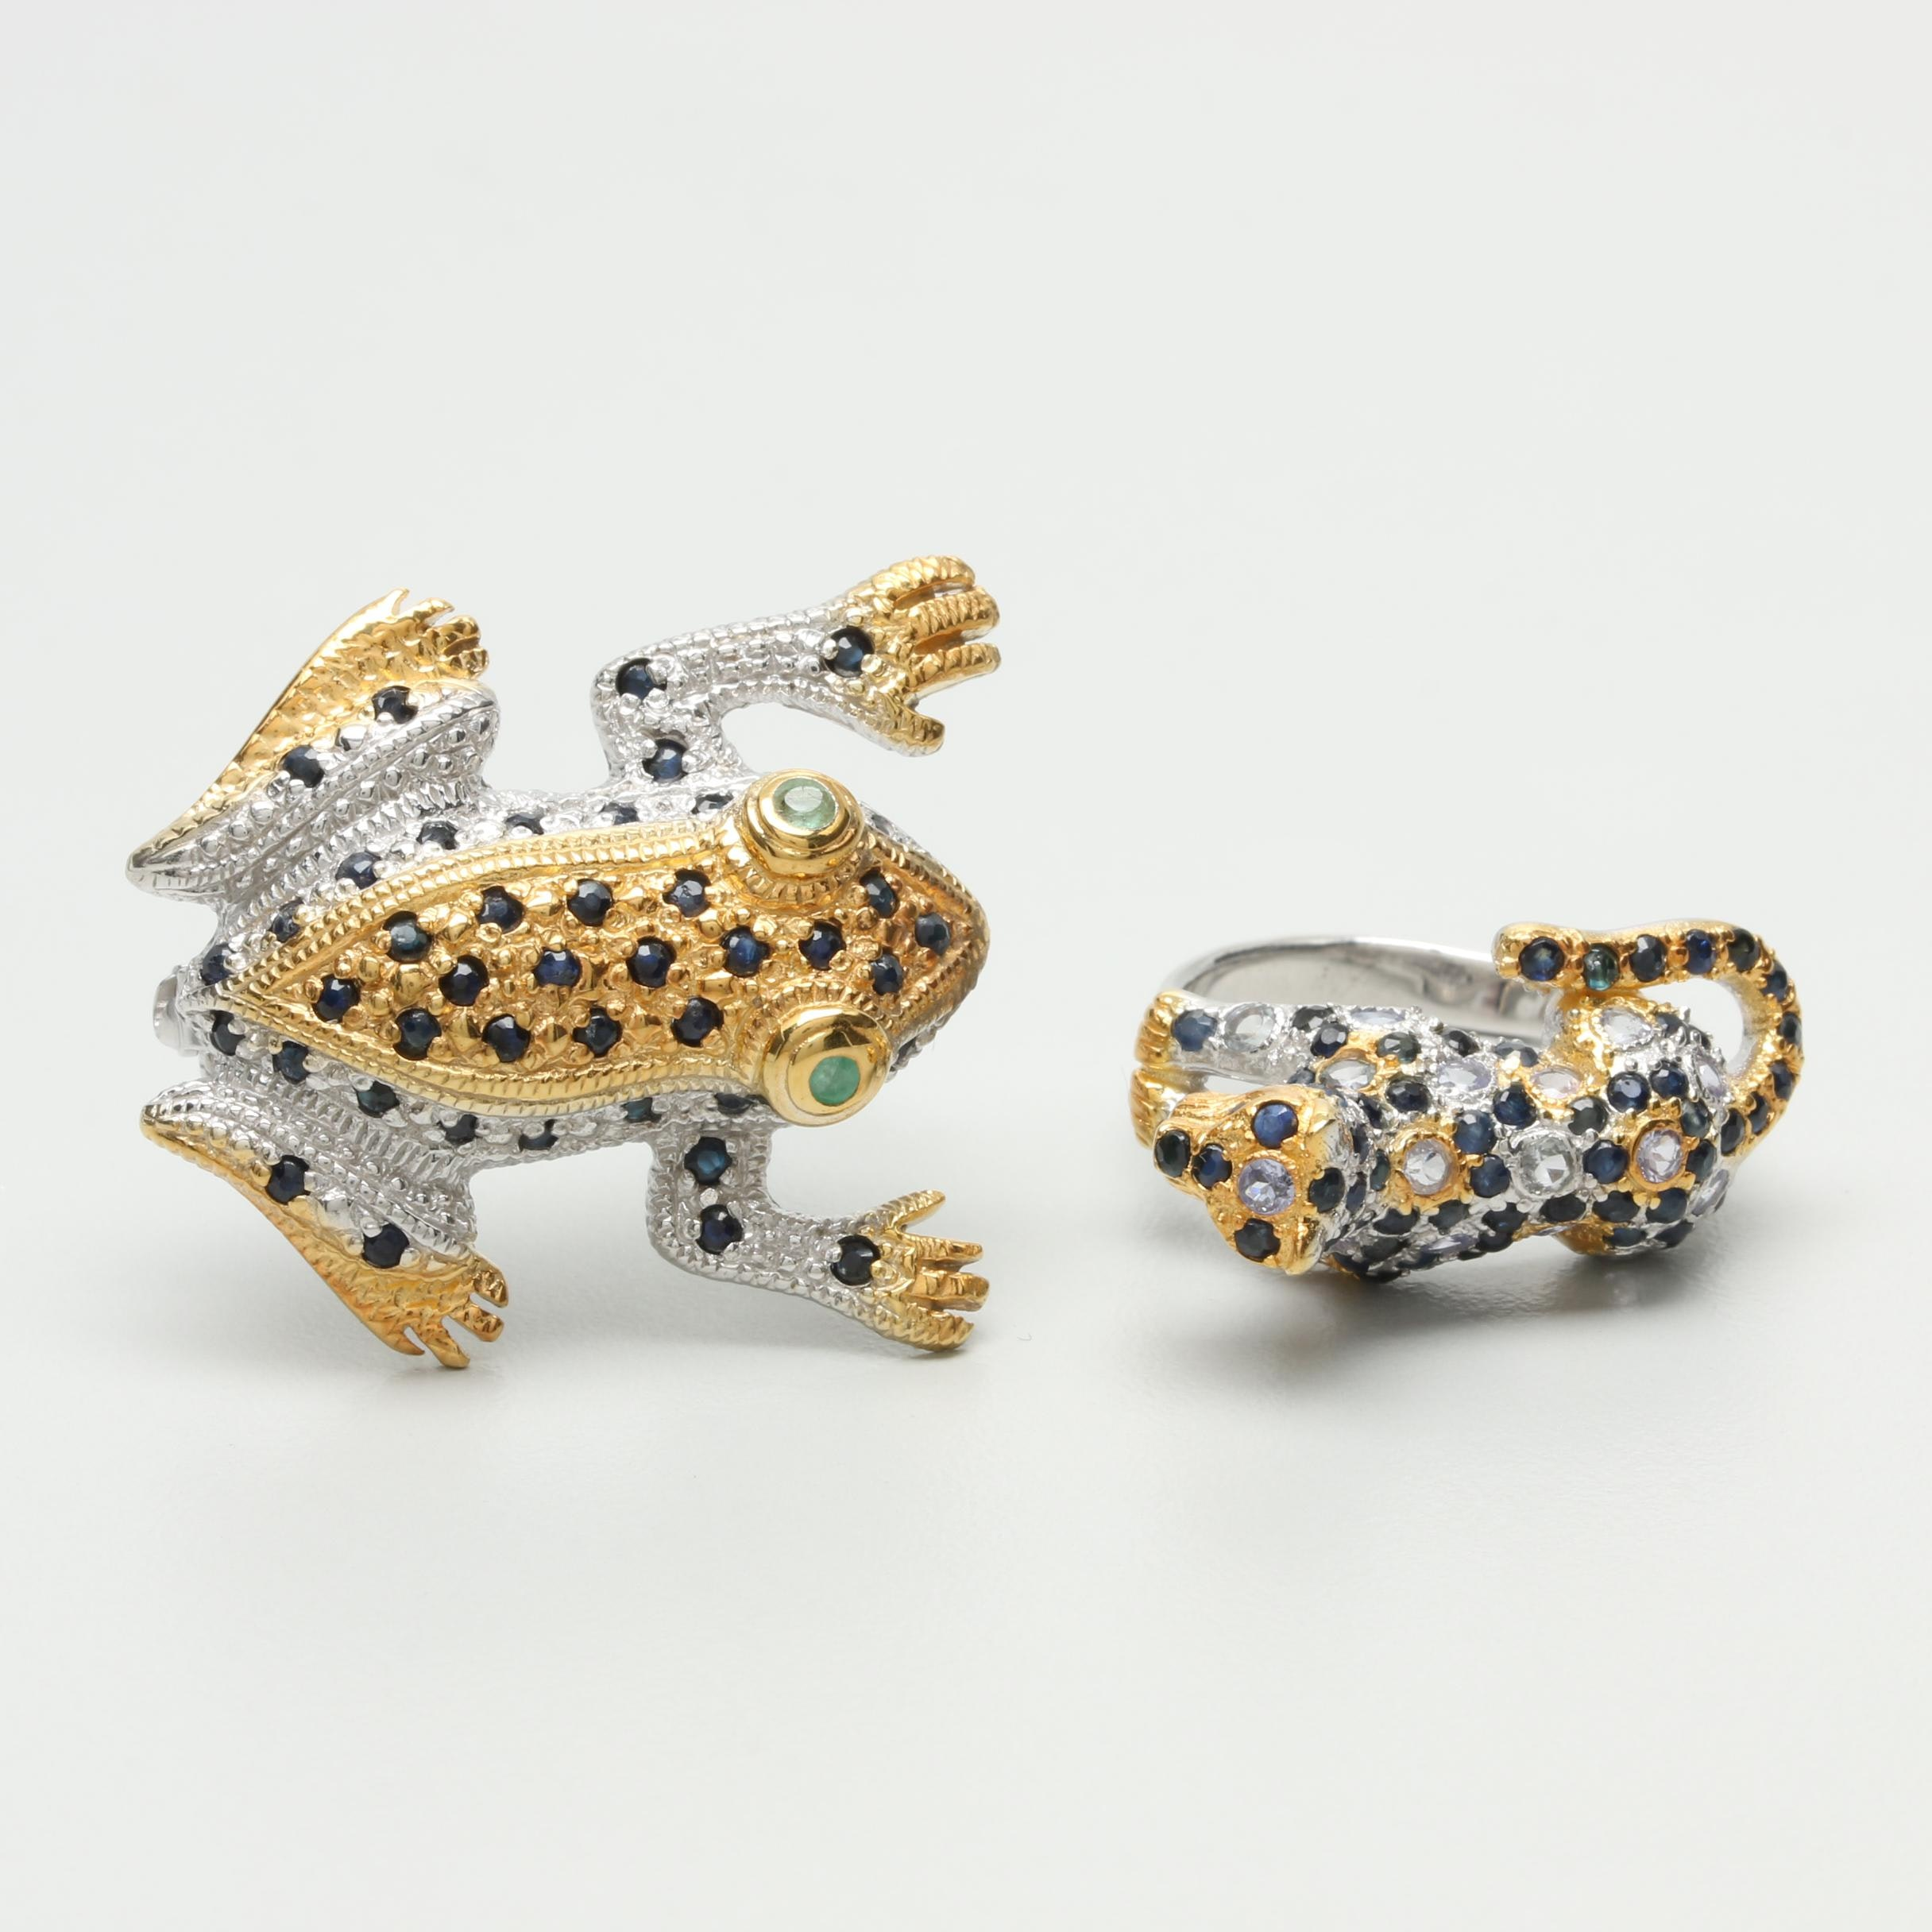 Sterling Silver Frog Brooch and Spotted Cat Ring